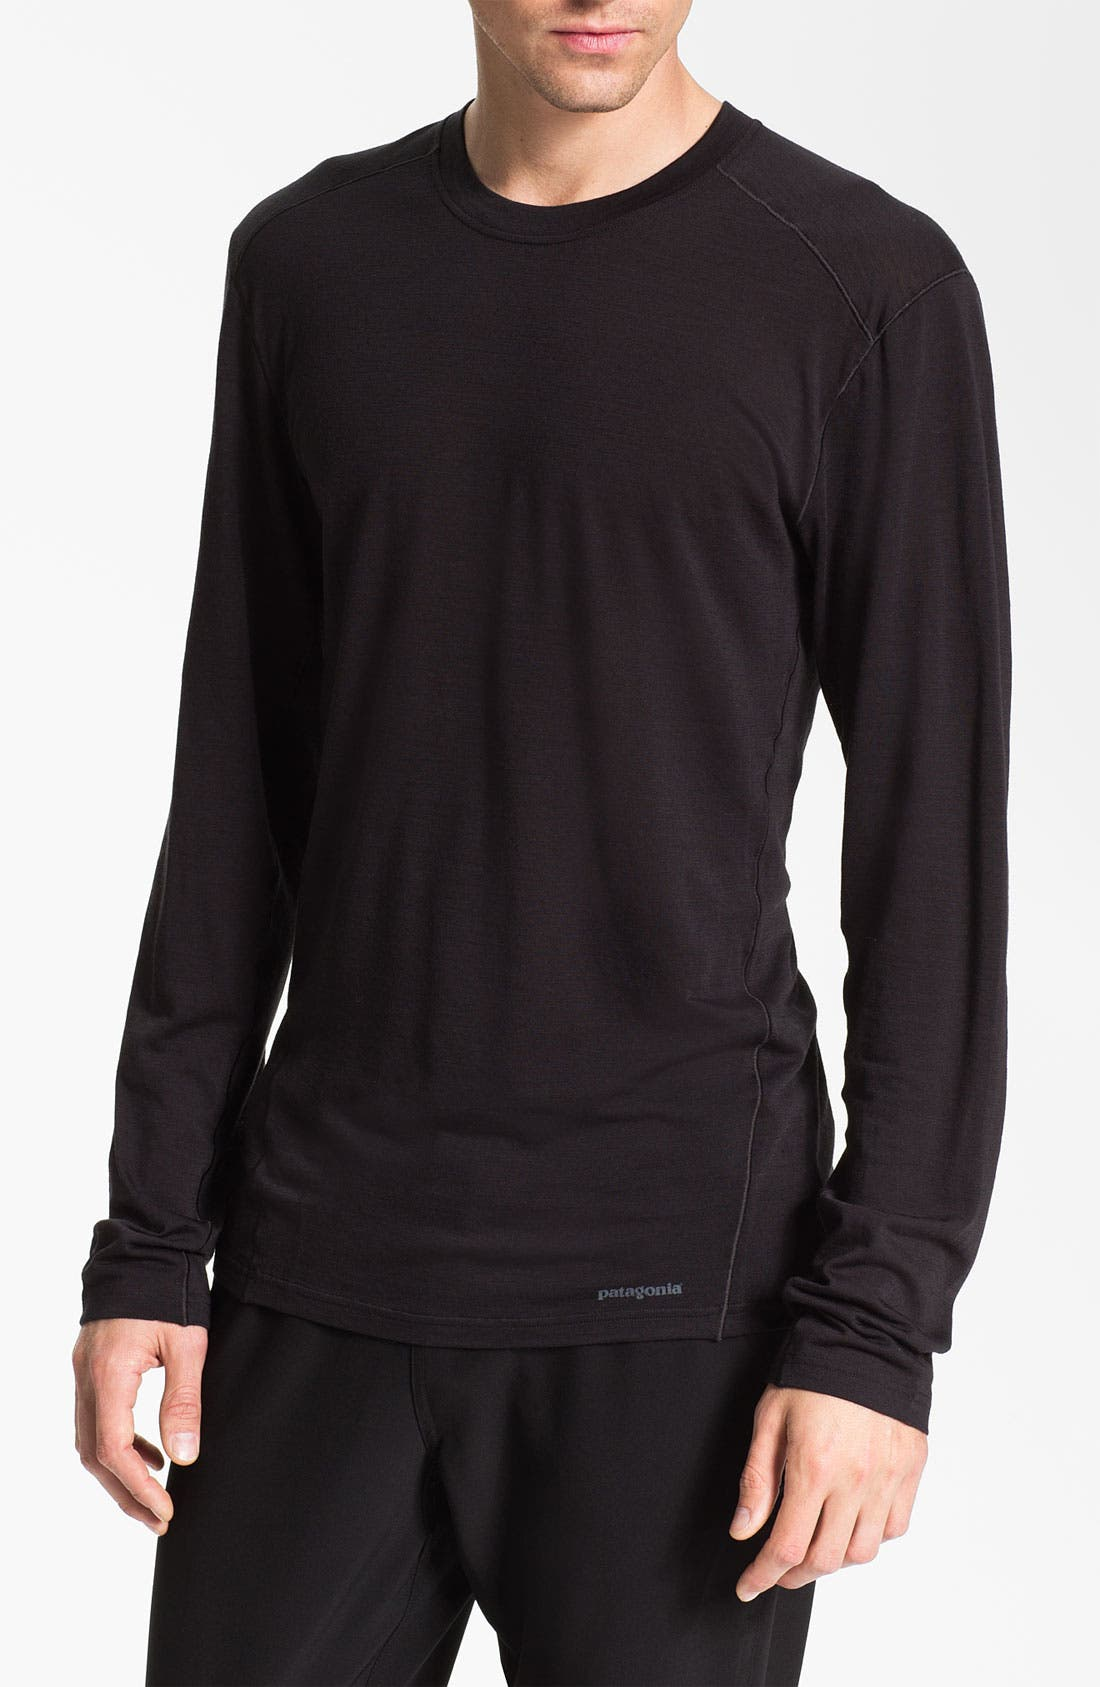 Main Image - Patagonia 'Merino® 1' Long Sleeve T-Shirt